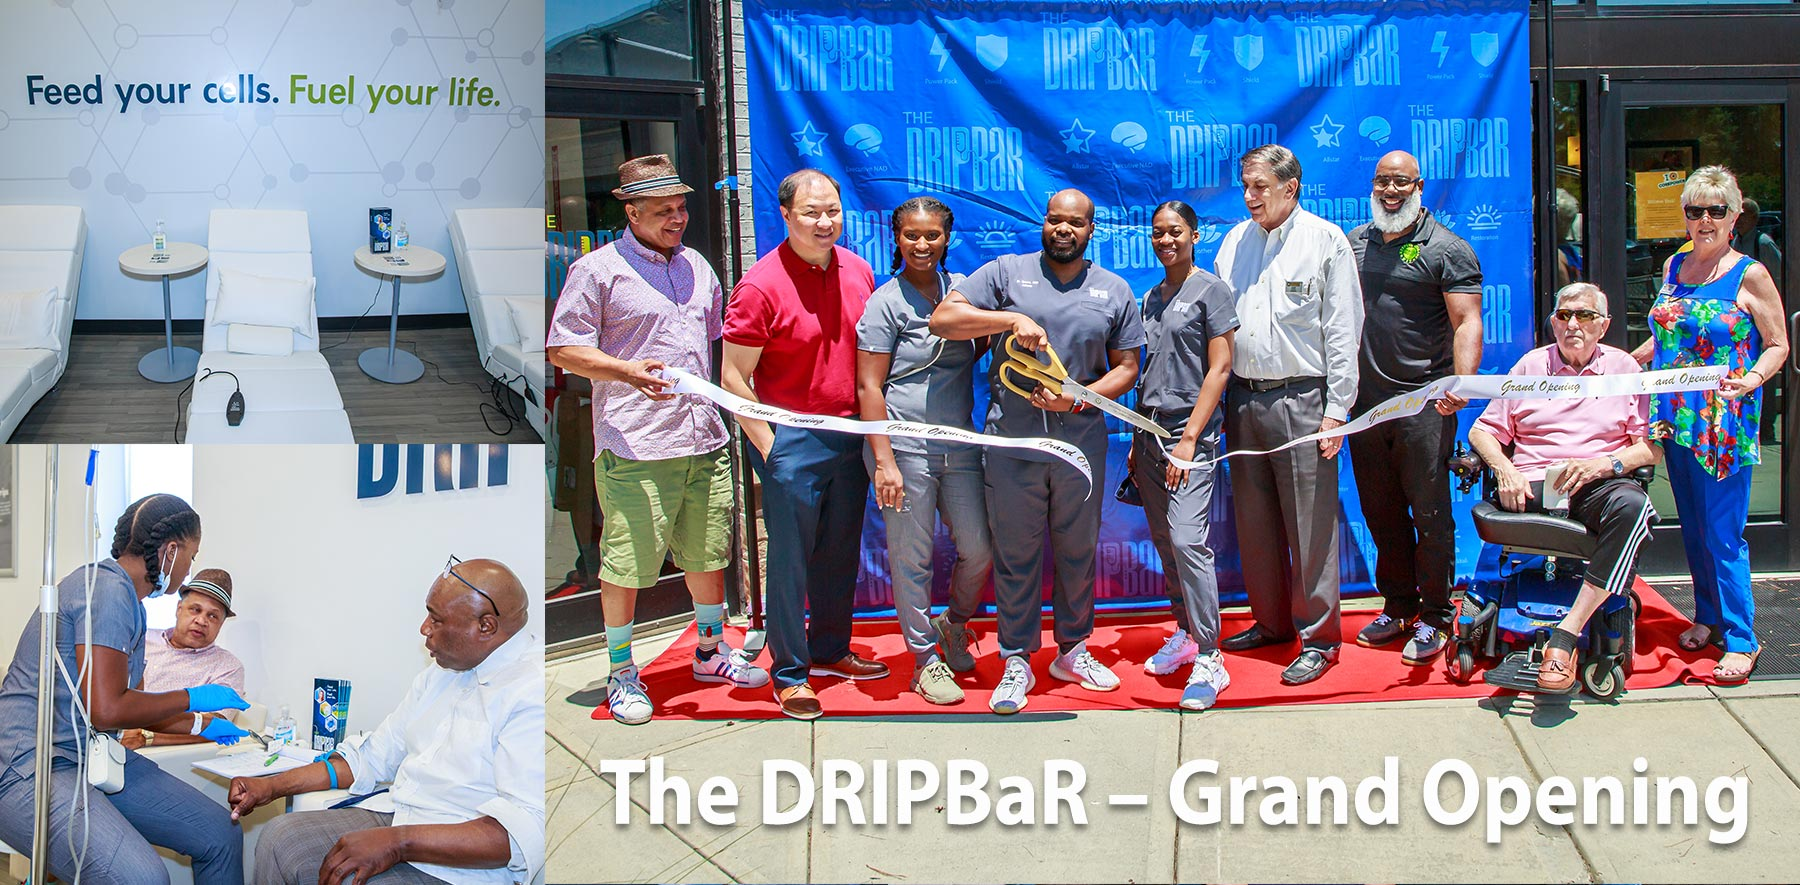 Grand Opening: The DRIPBaR of Atlanta can give your body a boost in just 5 min with one of its seven IM Quick Shots!.